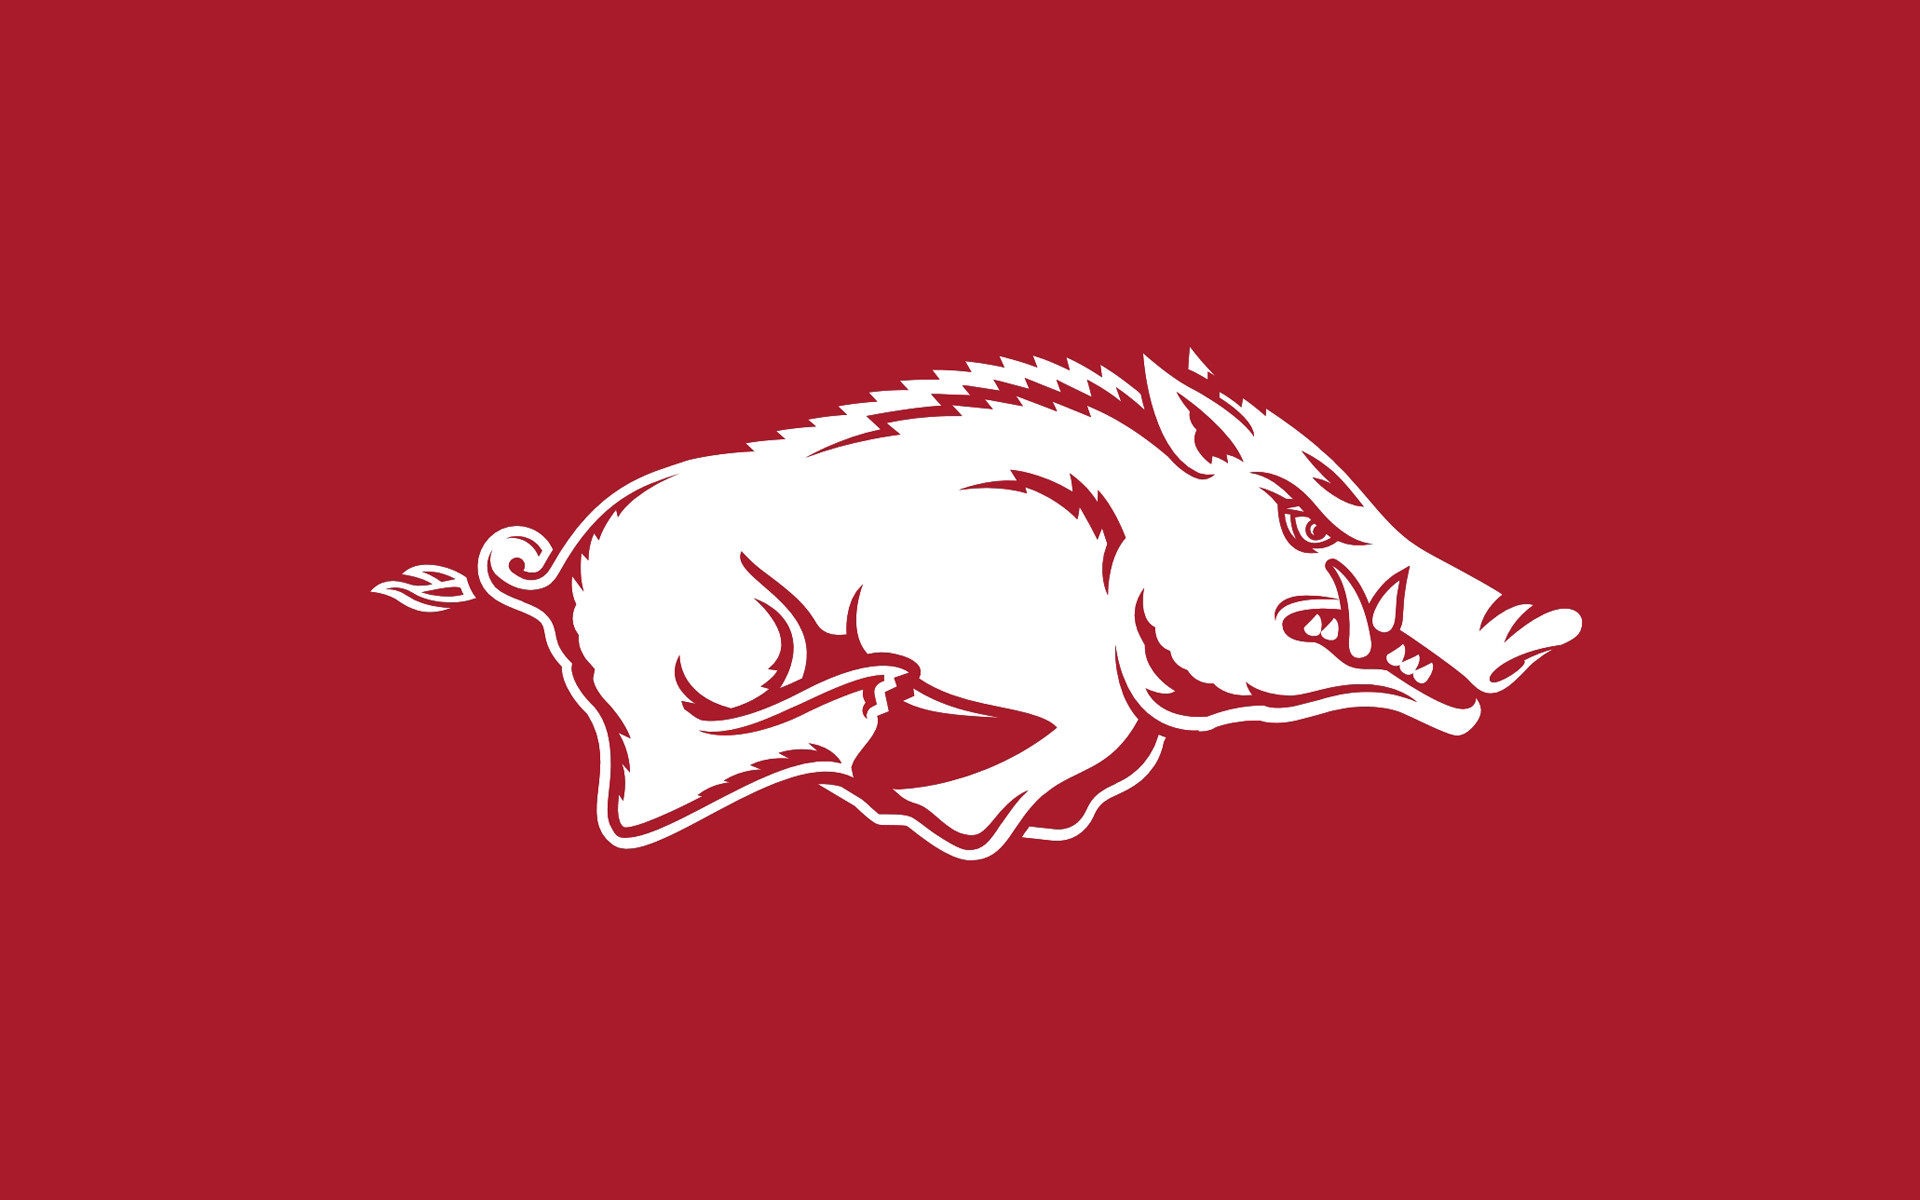 1920x1200 desktop wallpaper arkansas razorbacks wallpaper by wallpaper222.com .